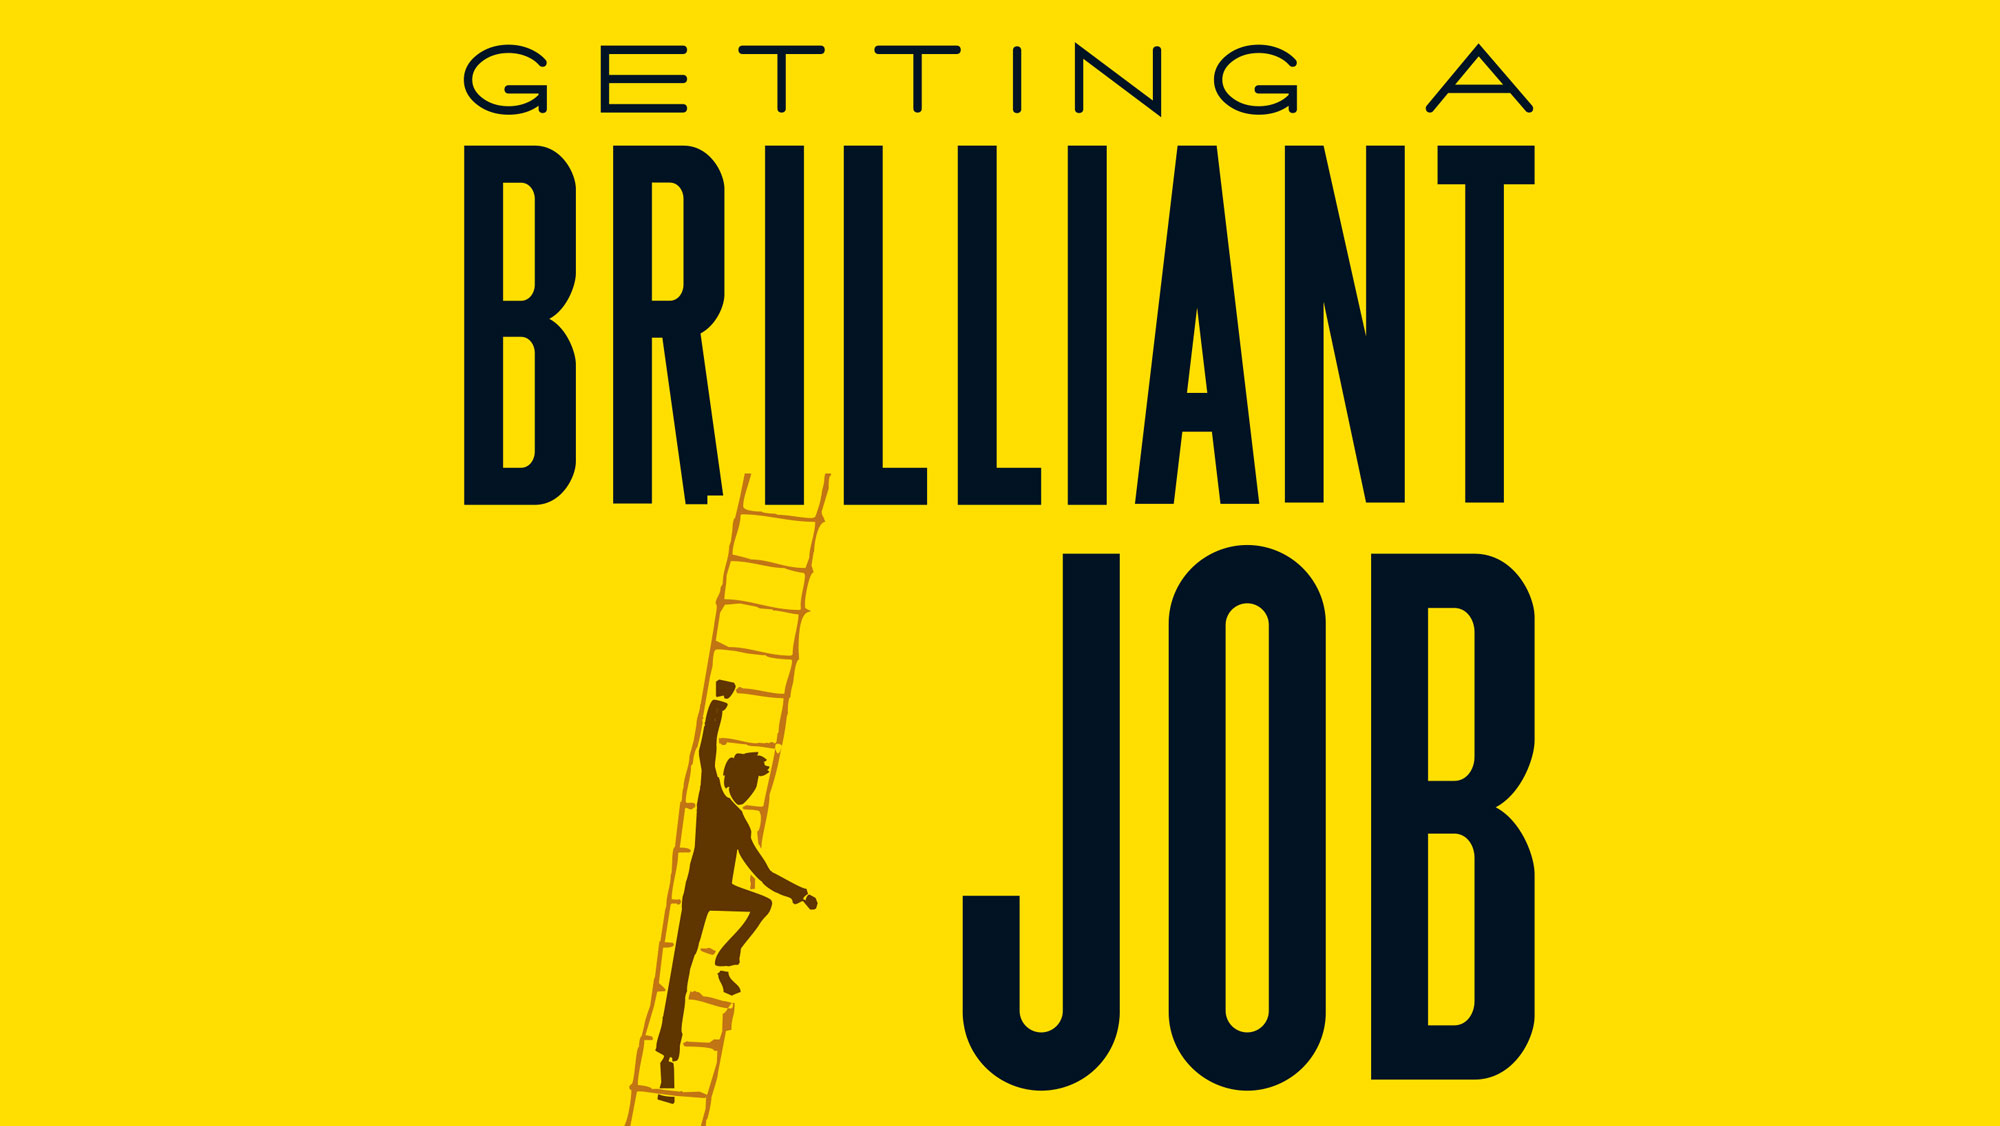 Print: Getting A Brilliant Job - book cover design